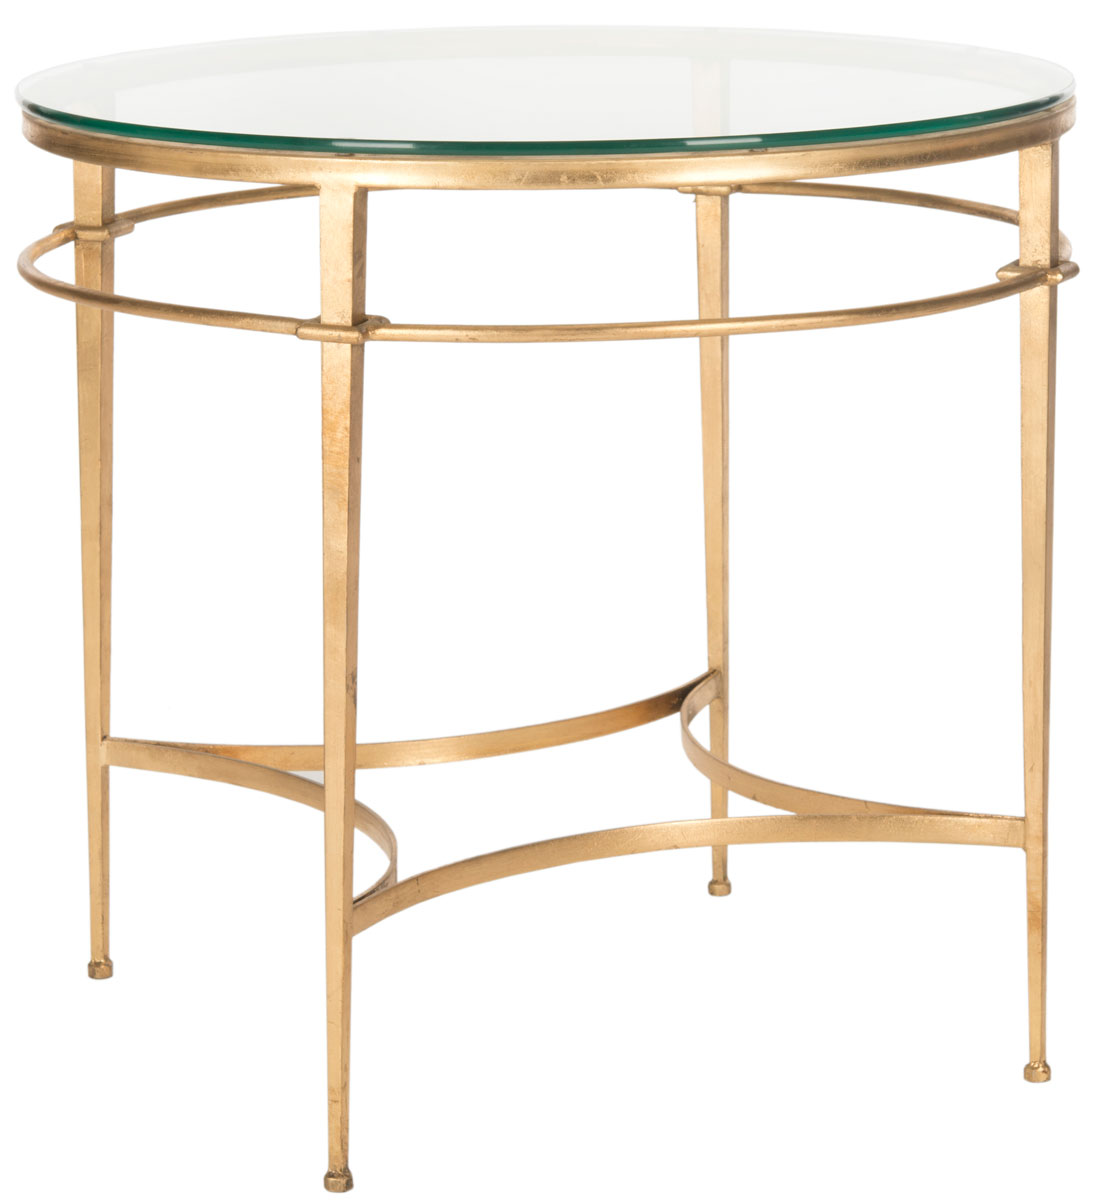 safavieh couture glass top round accent table thin side metal with gold and tall white gallerie rugs bamboo hampton bay pembrey entrance decor reclaimed wood bar tray small square